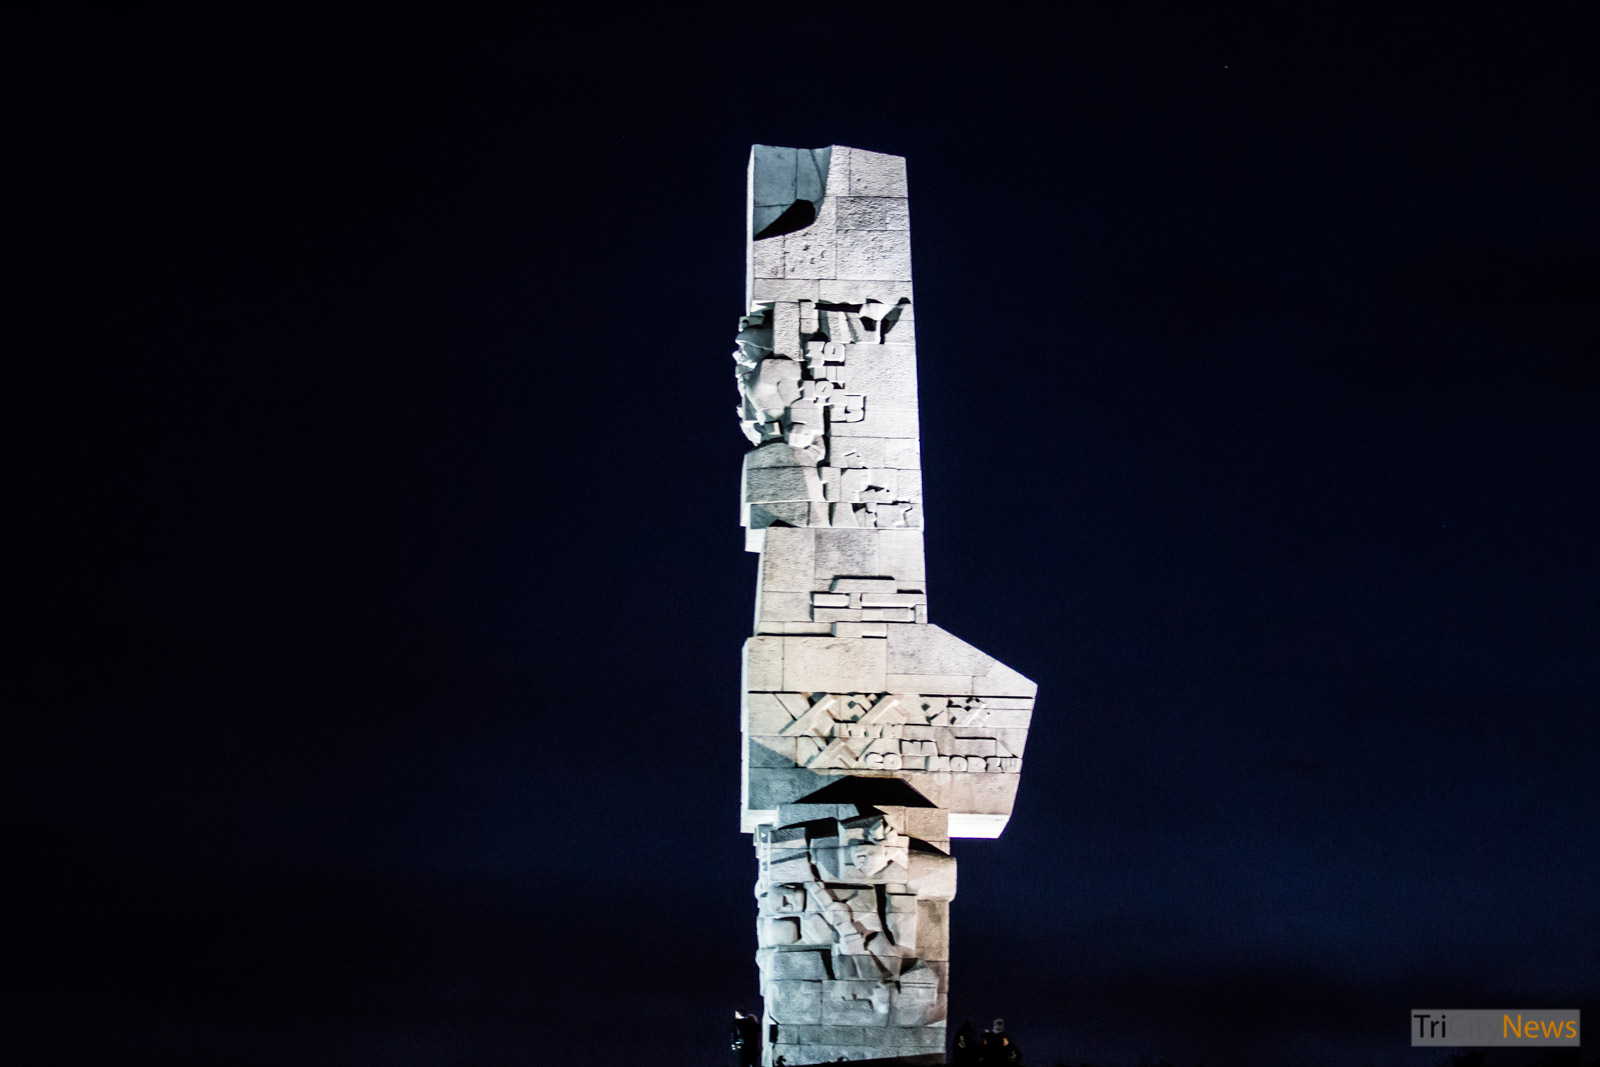 The monument at Westerplatte, Photo: Jakub Wozniak/Tricity News